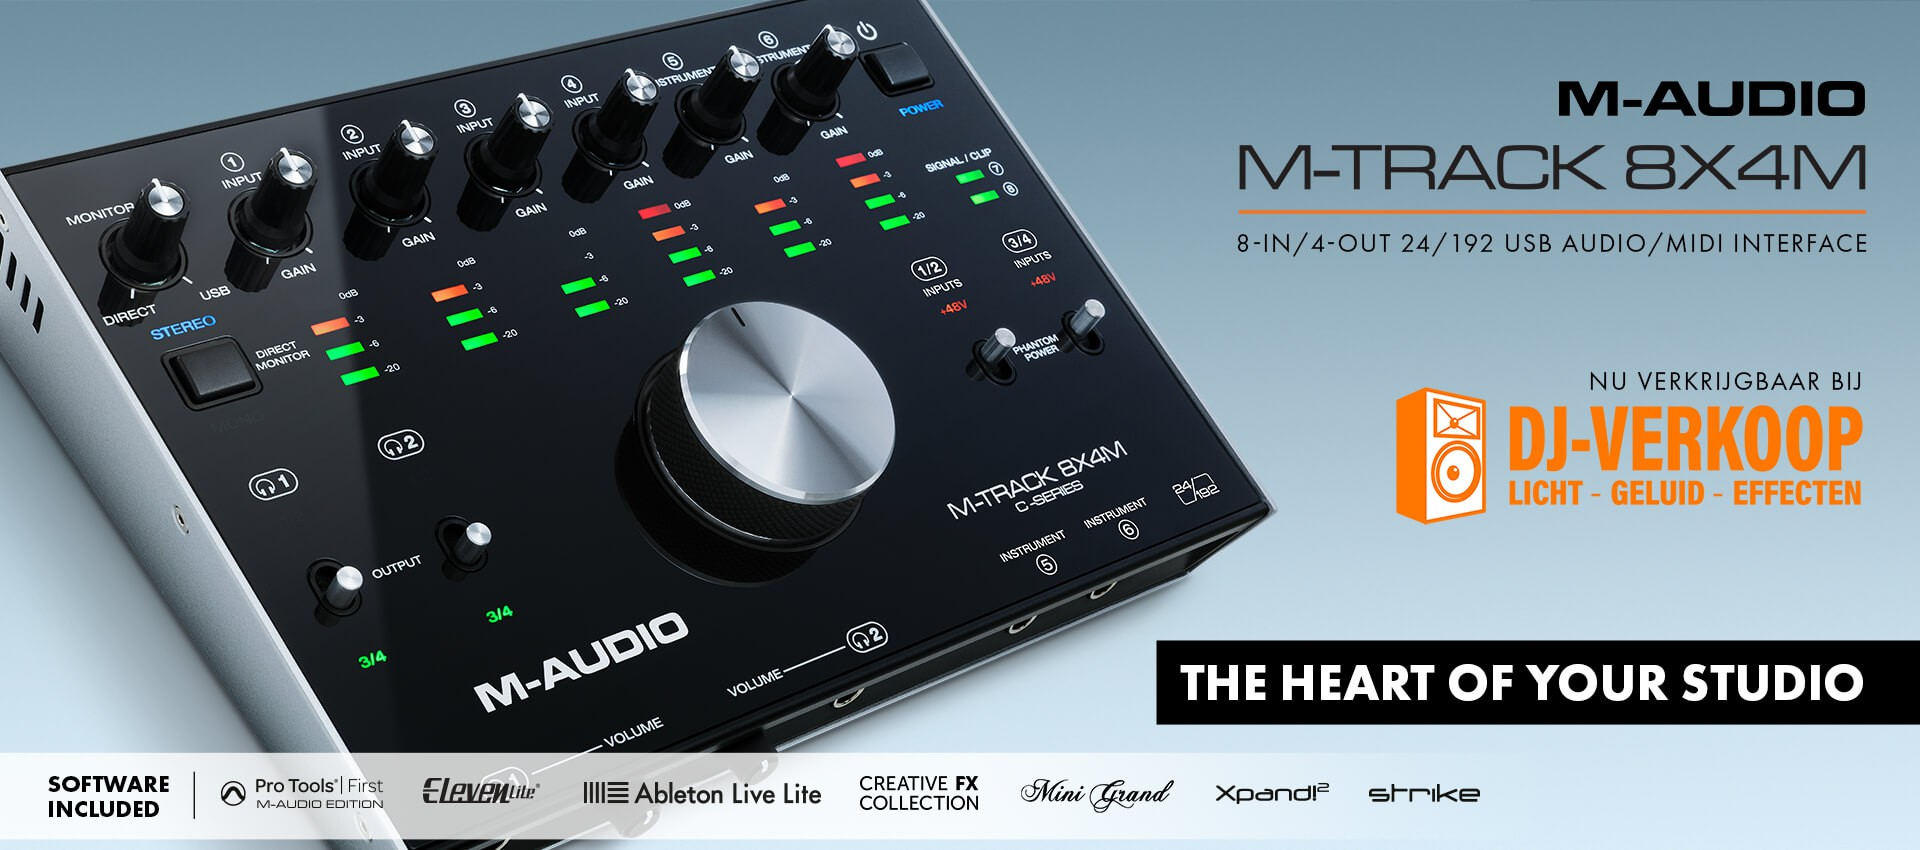 M-Audio M-Track 8x4M Audio/MIDI Interface